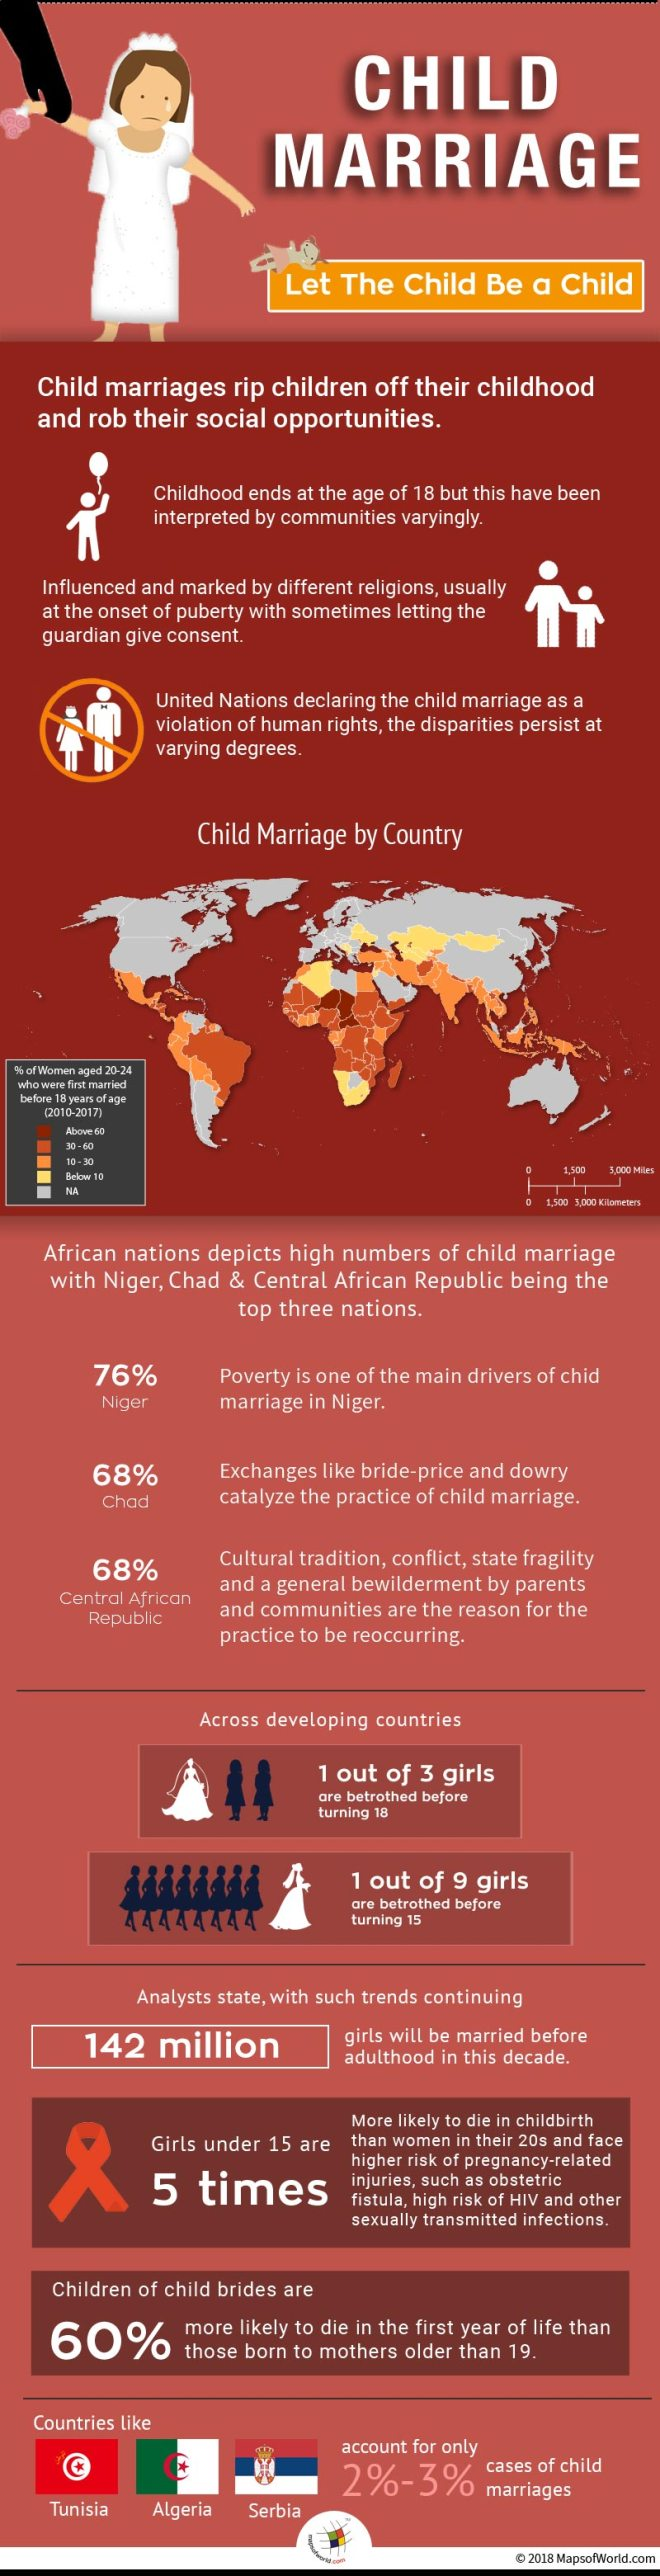 countries still practice child marriage